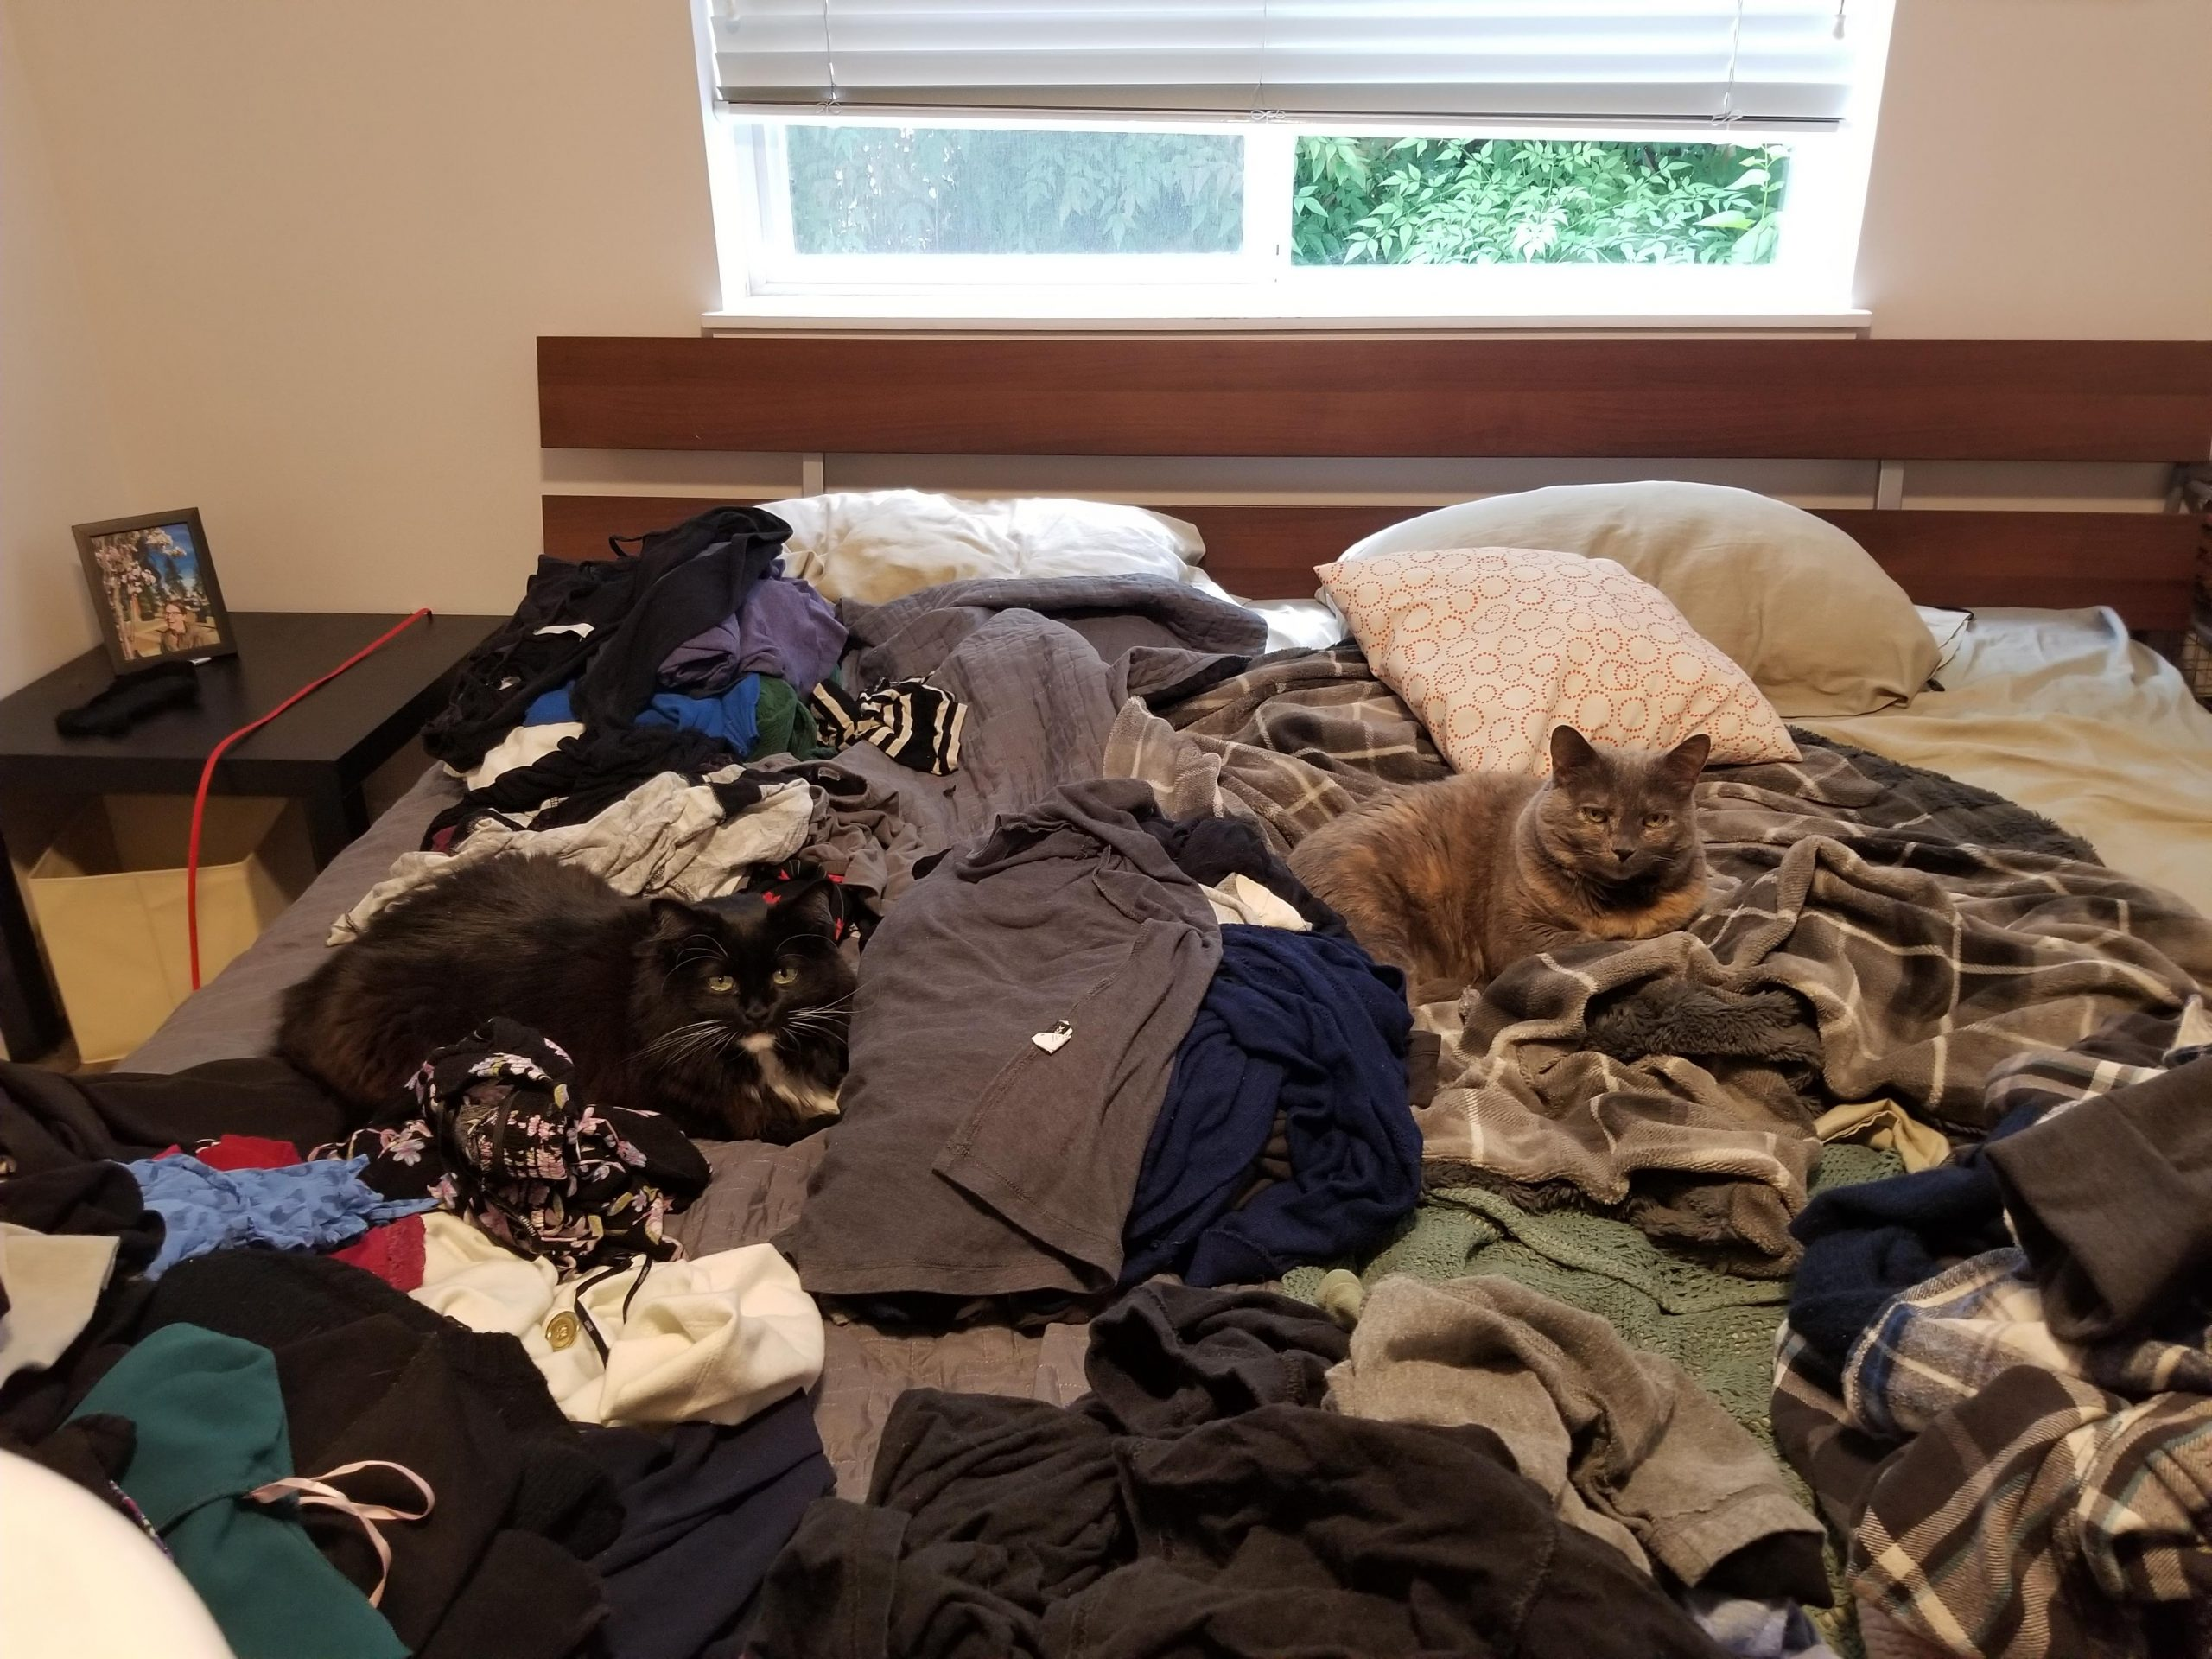 cats on bed surrounded by clothing